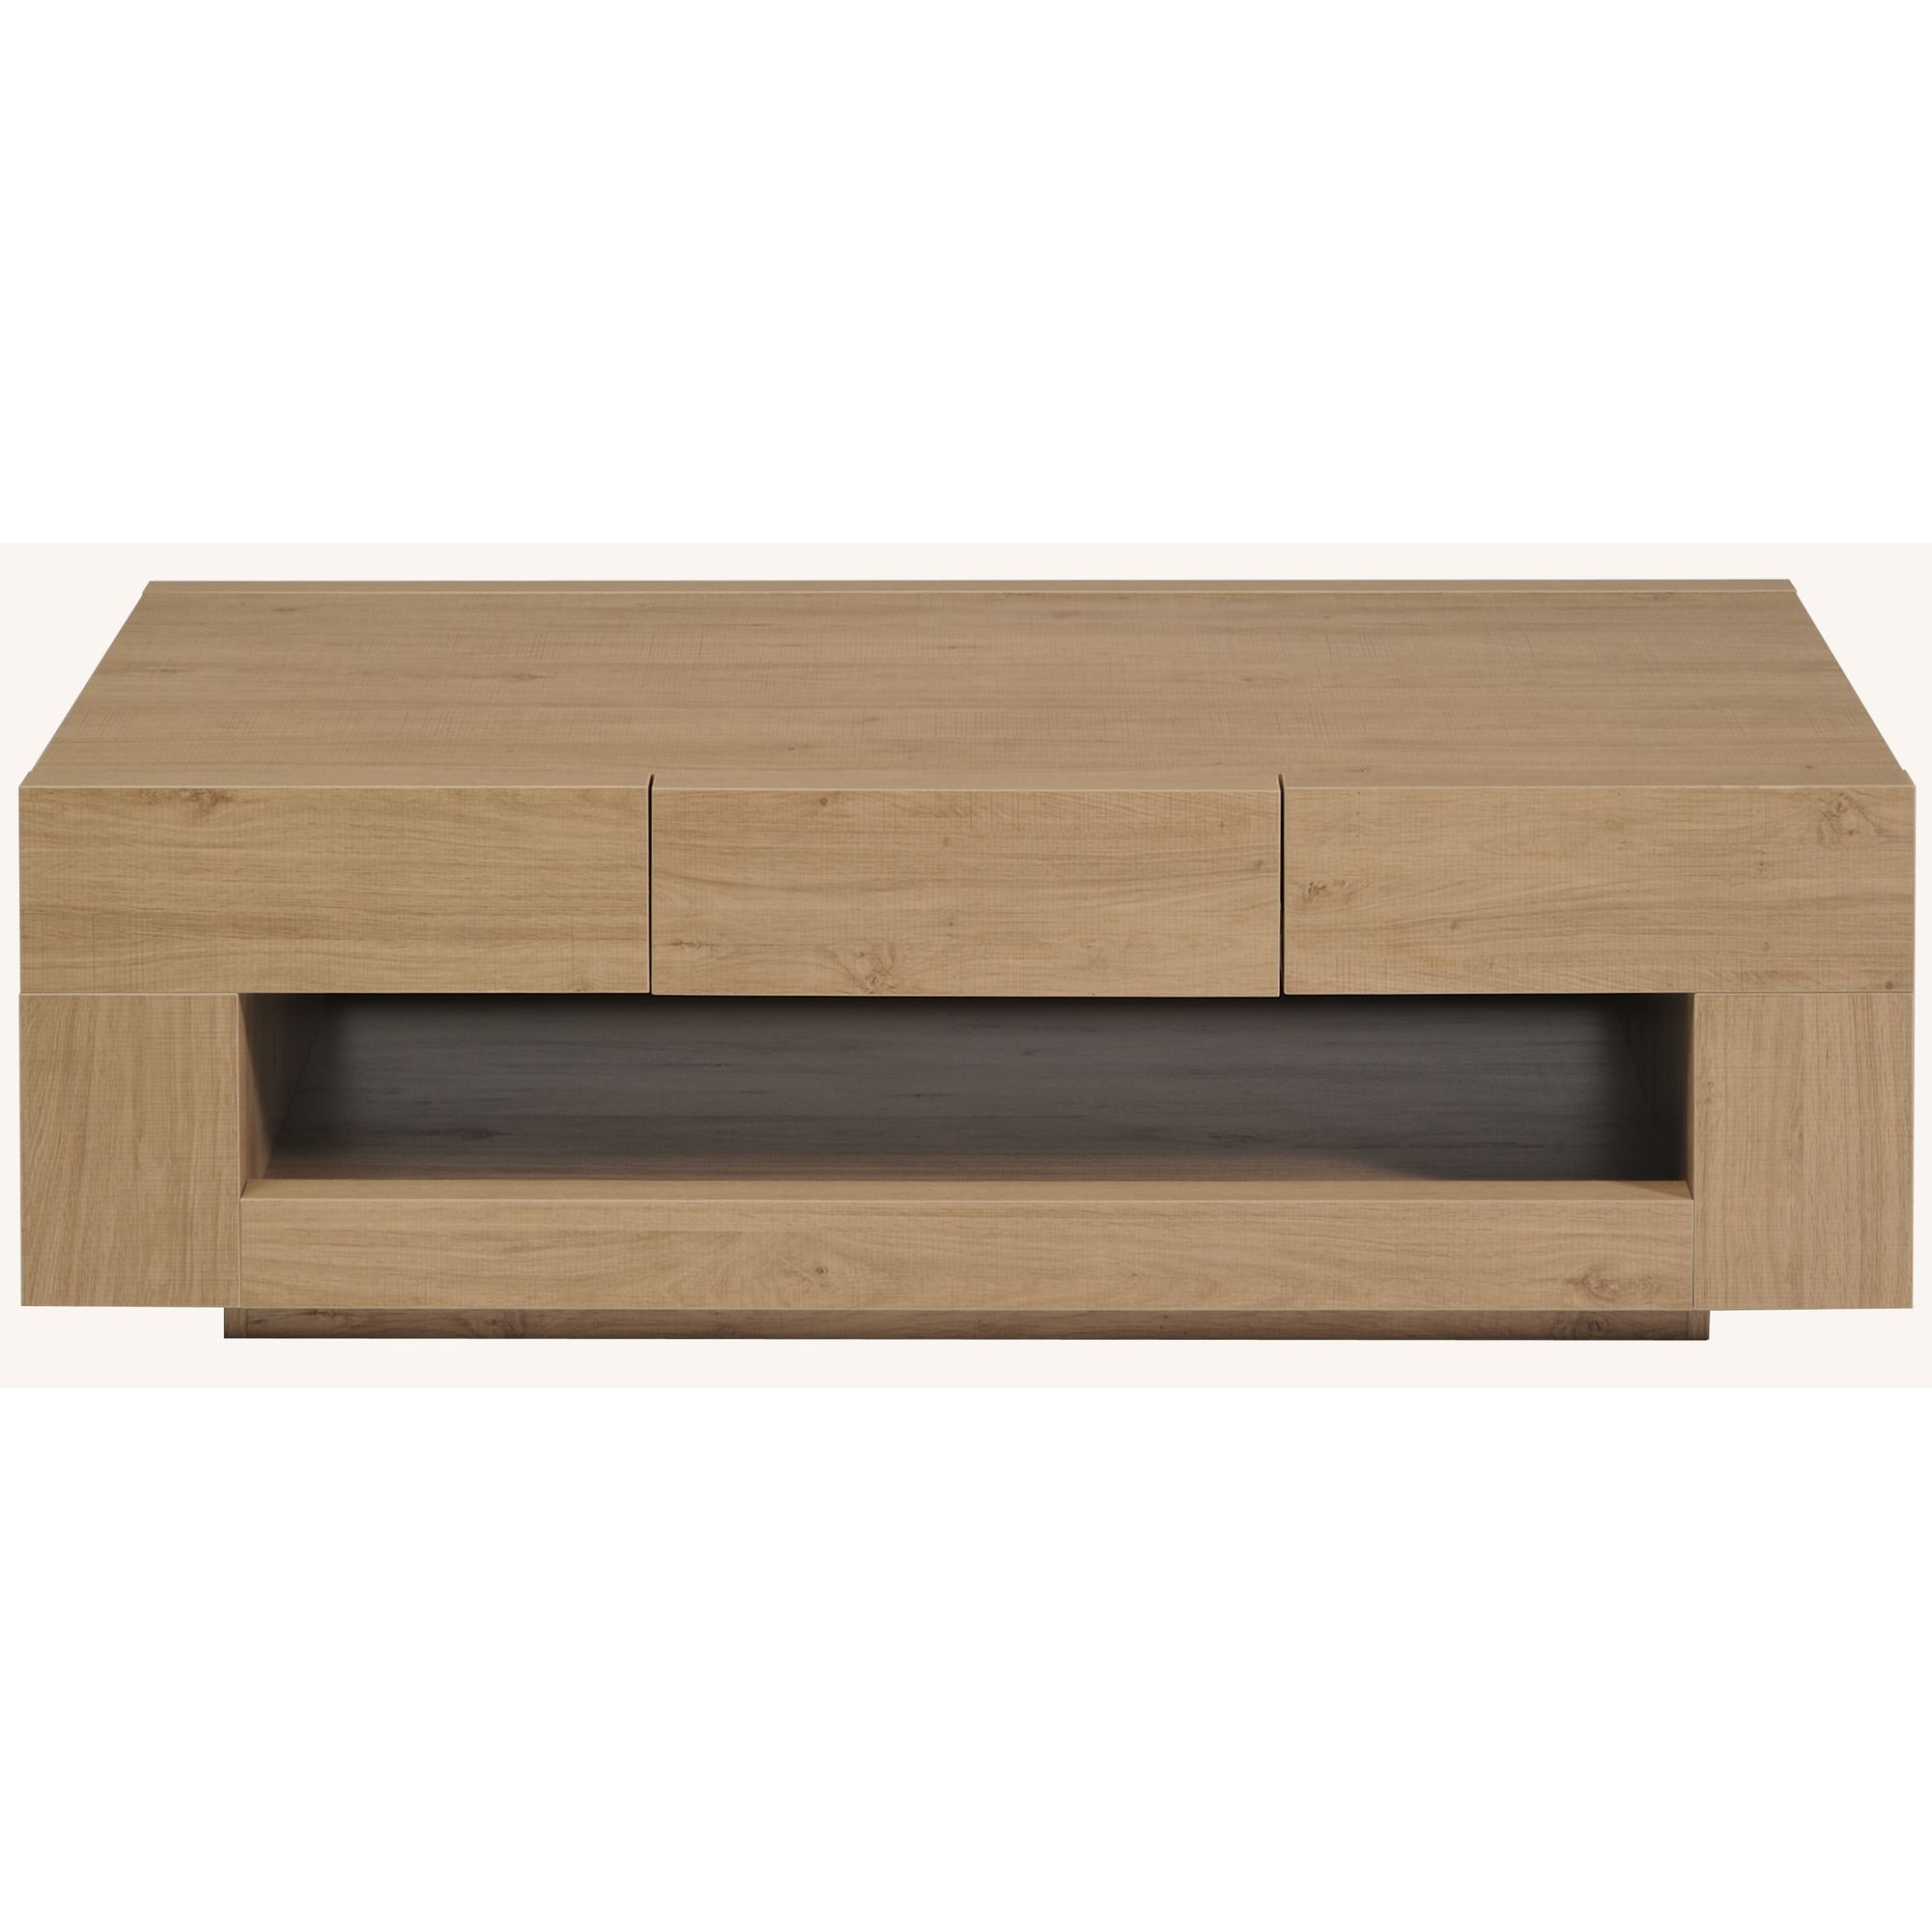 Parisot Eavy Coffee Table with Drawer at Tesco Direct